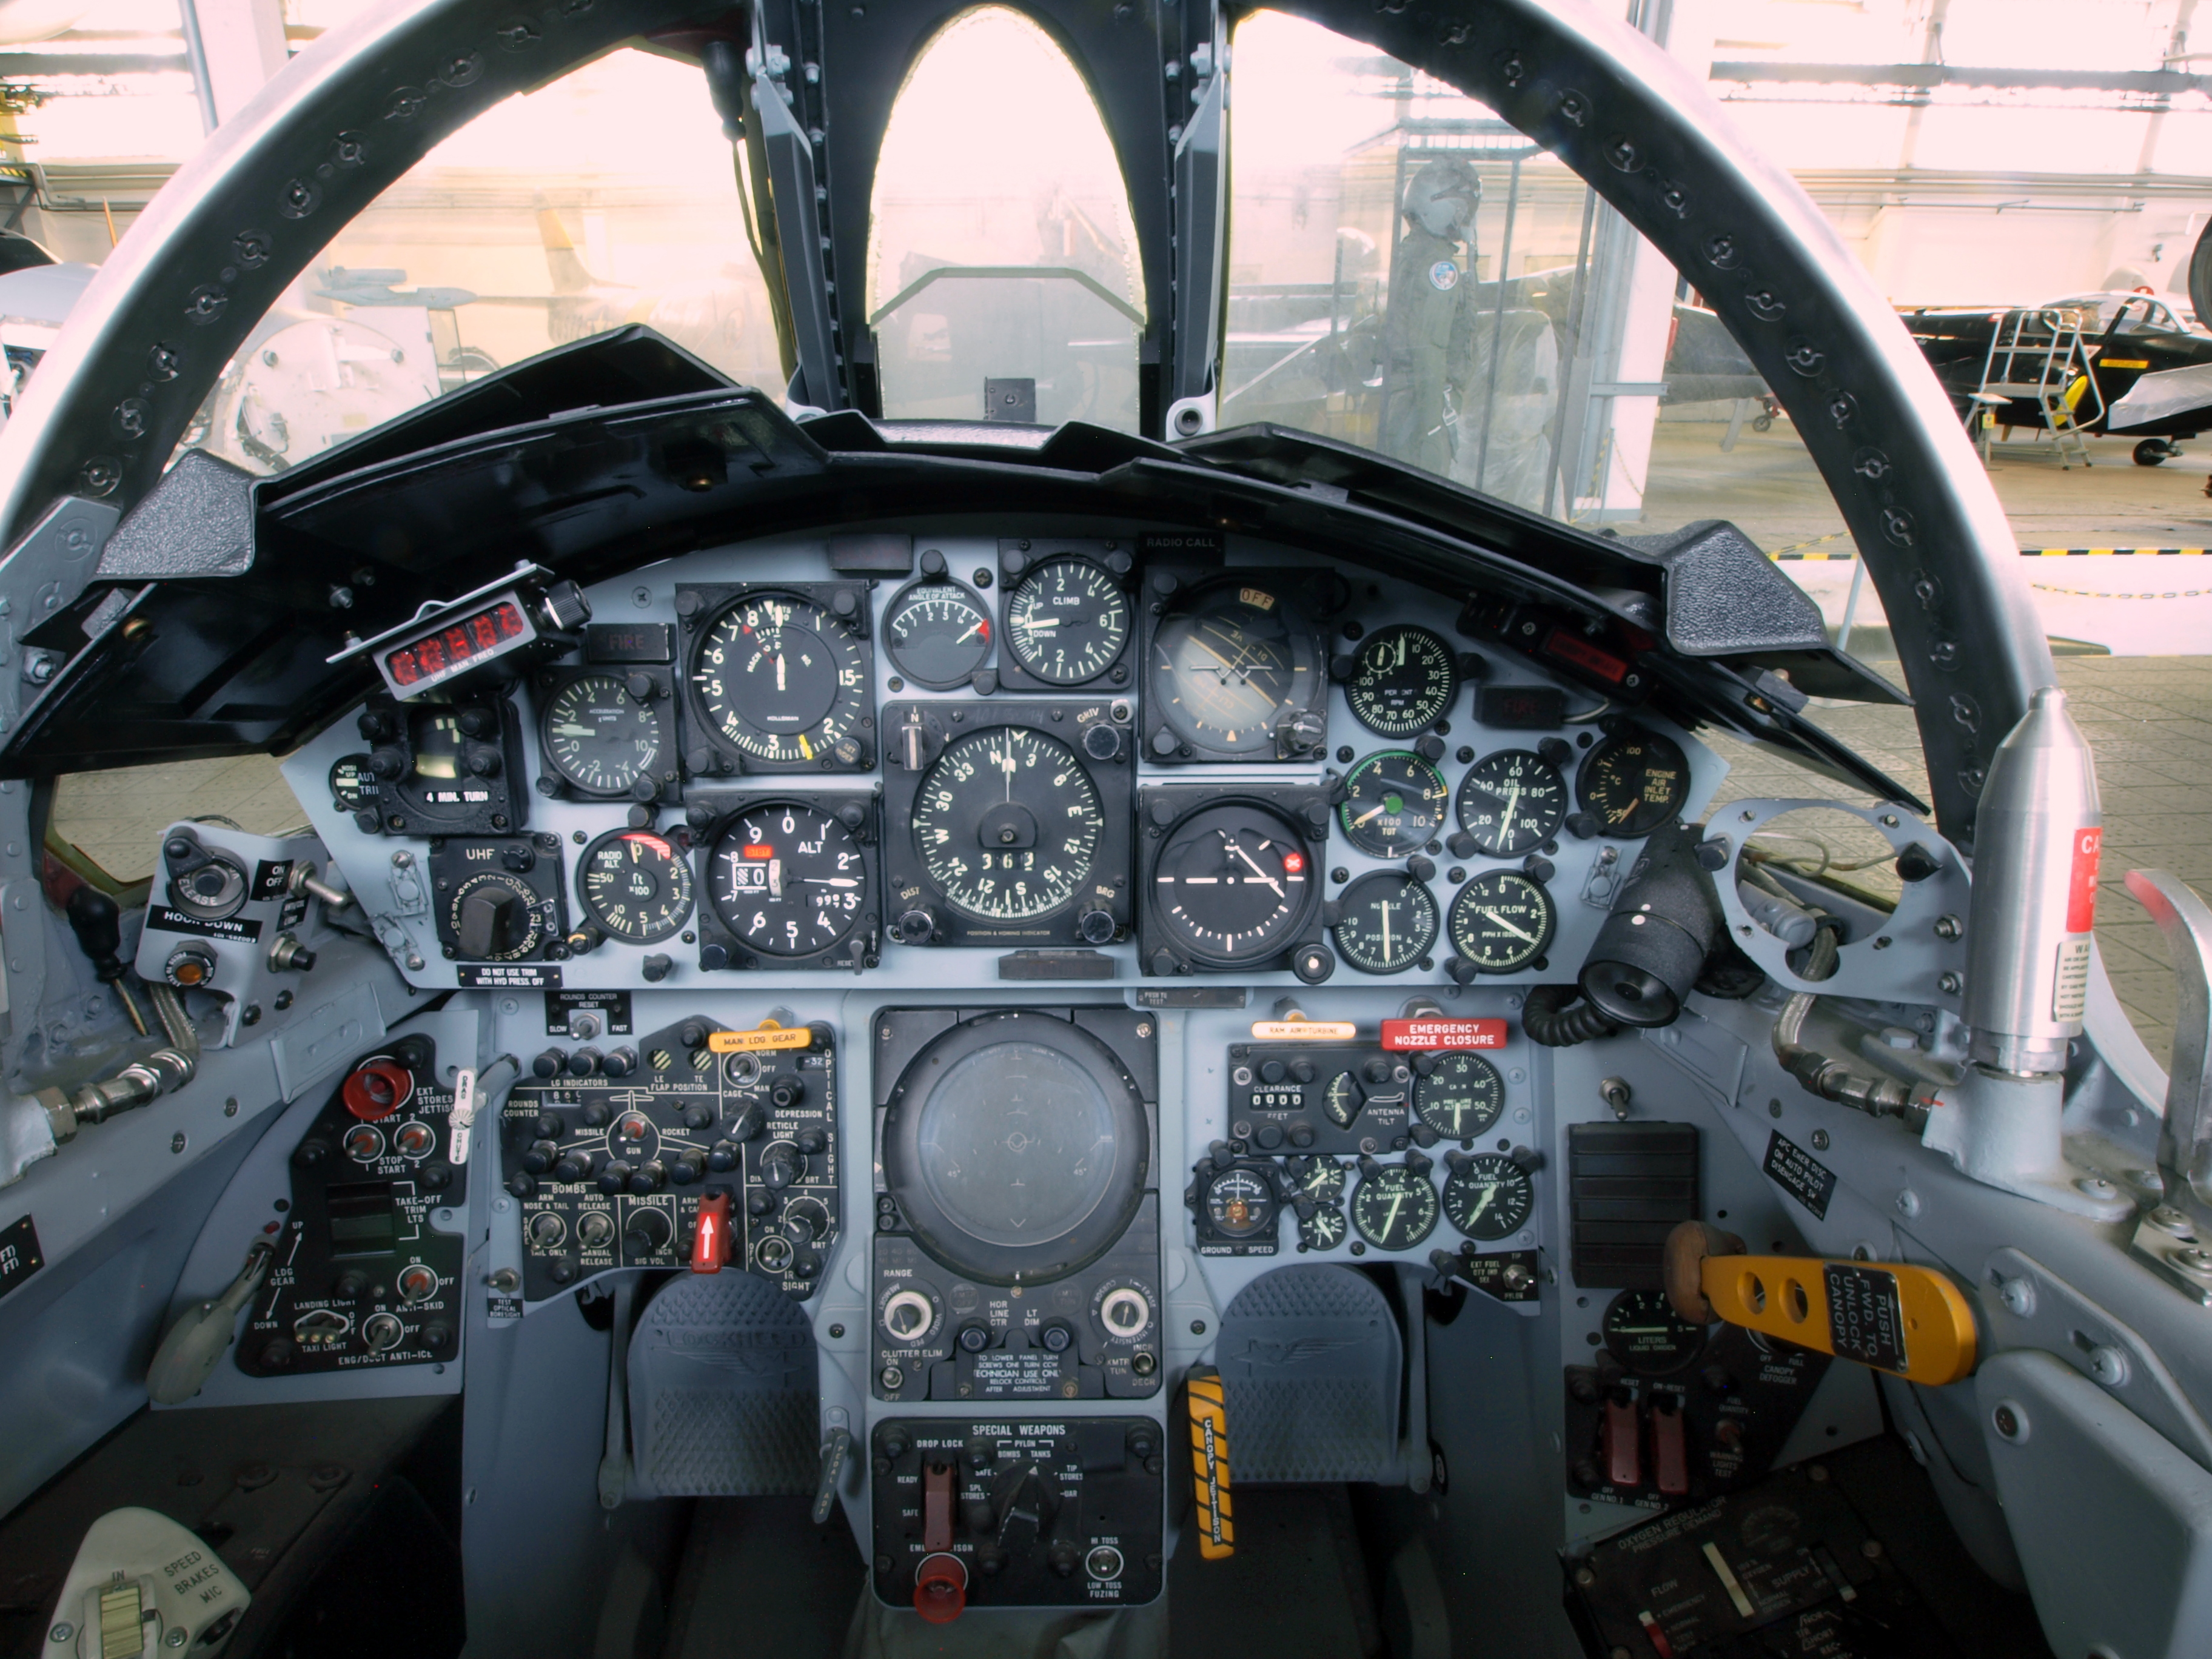 image of the F-104 Starfighter Cockpit